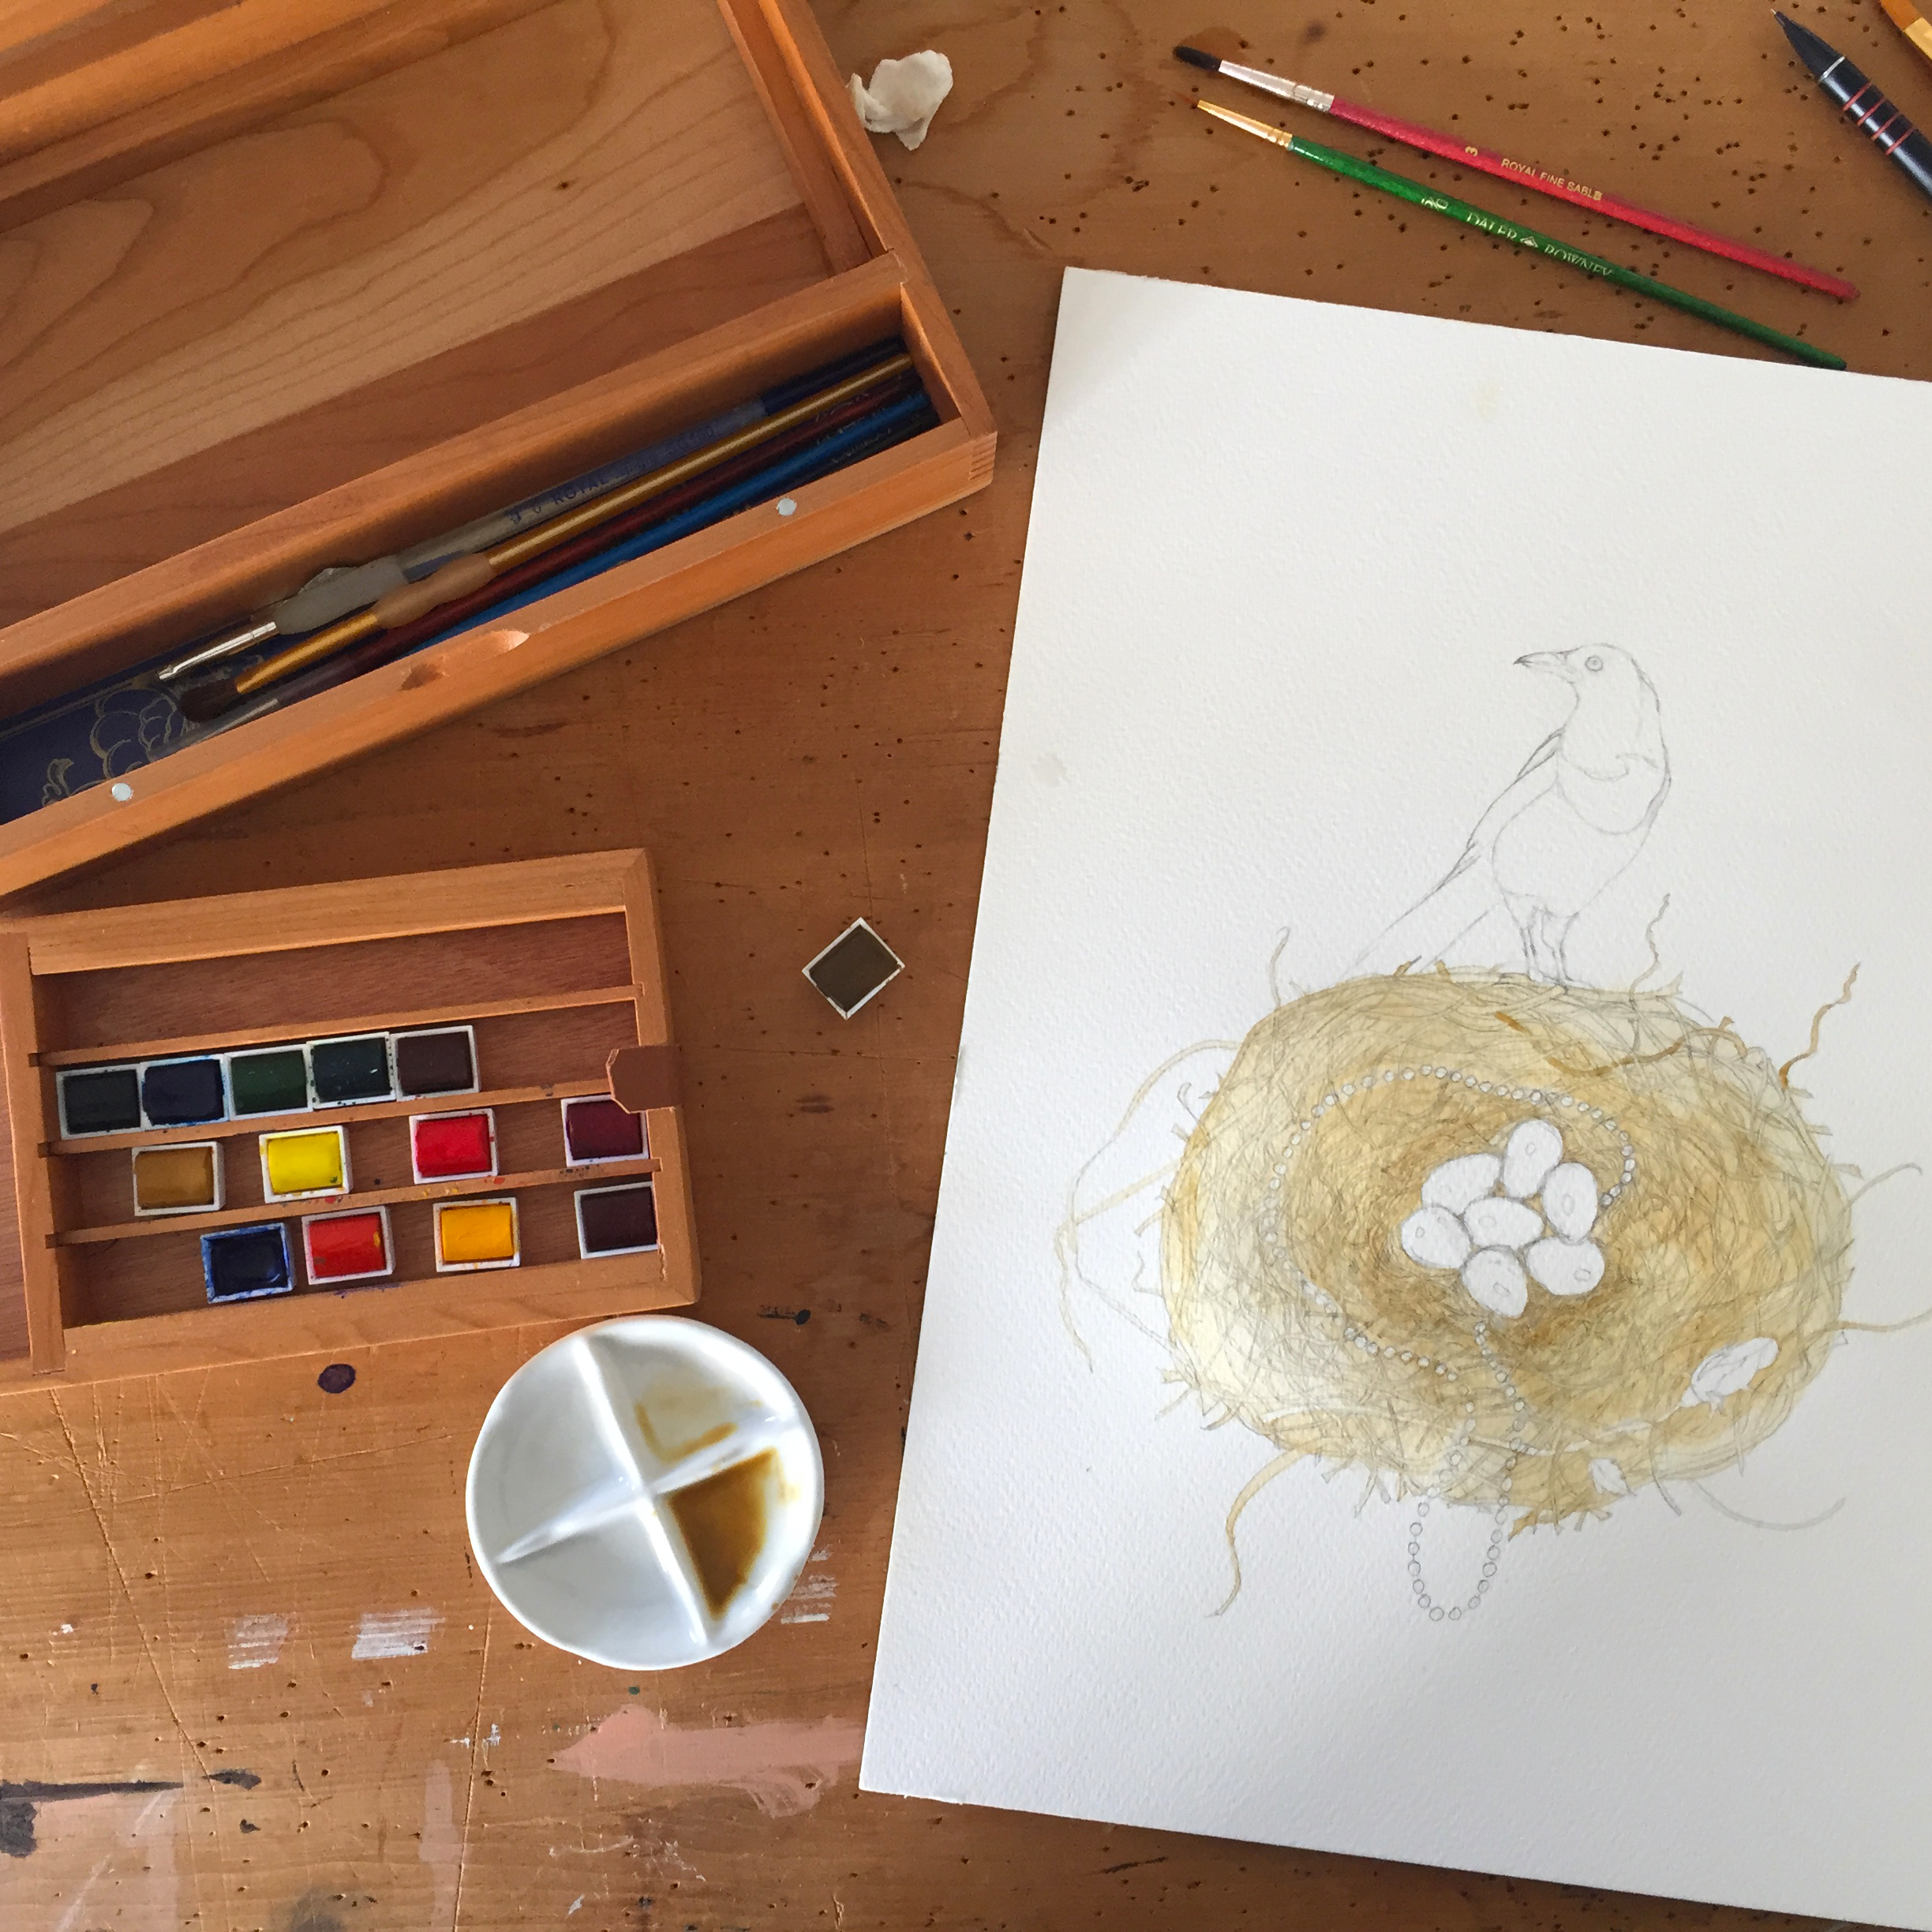 A photograph of the nest in the process of being painted with watercolours